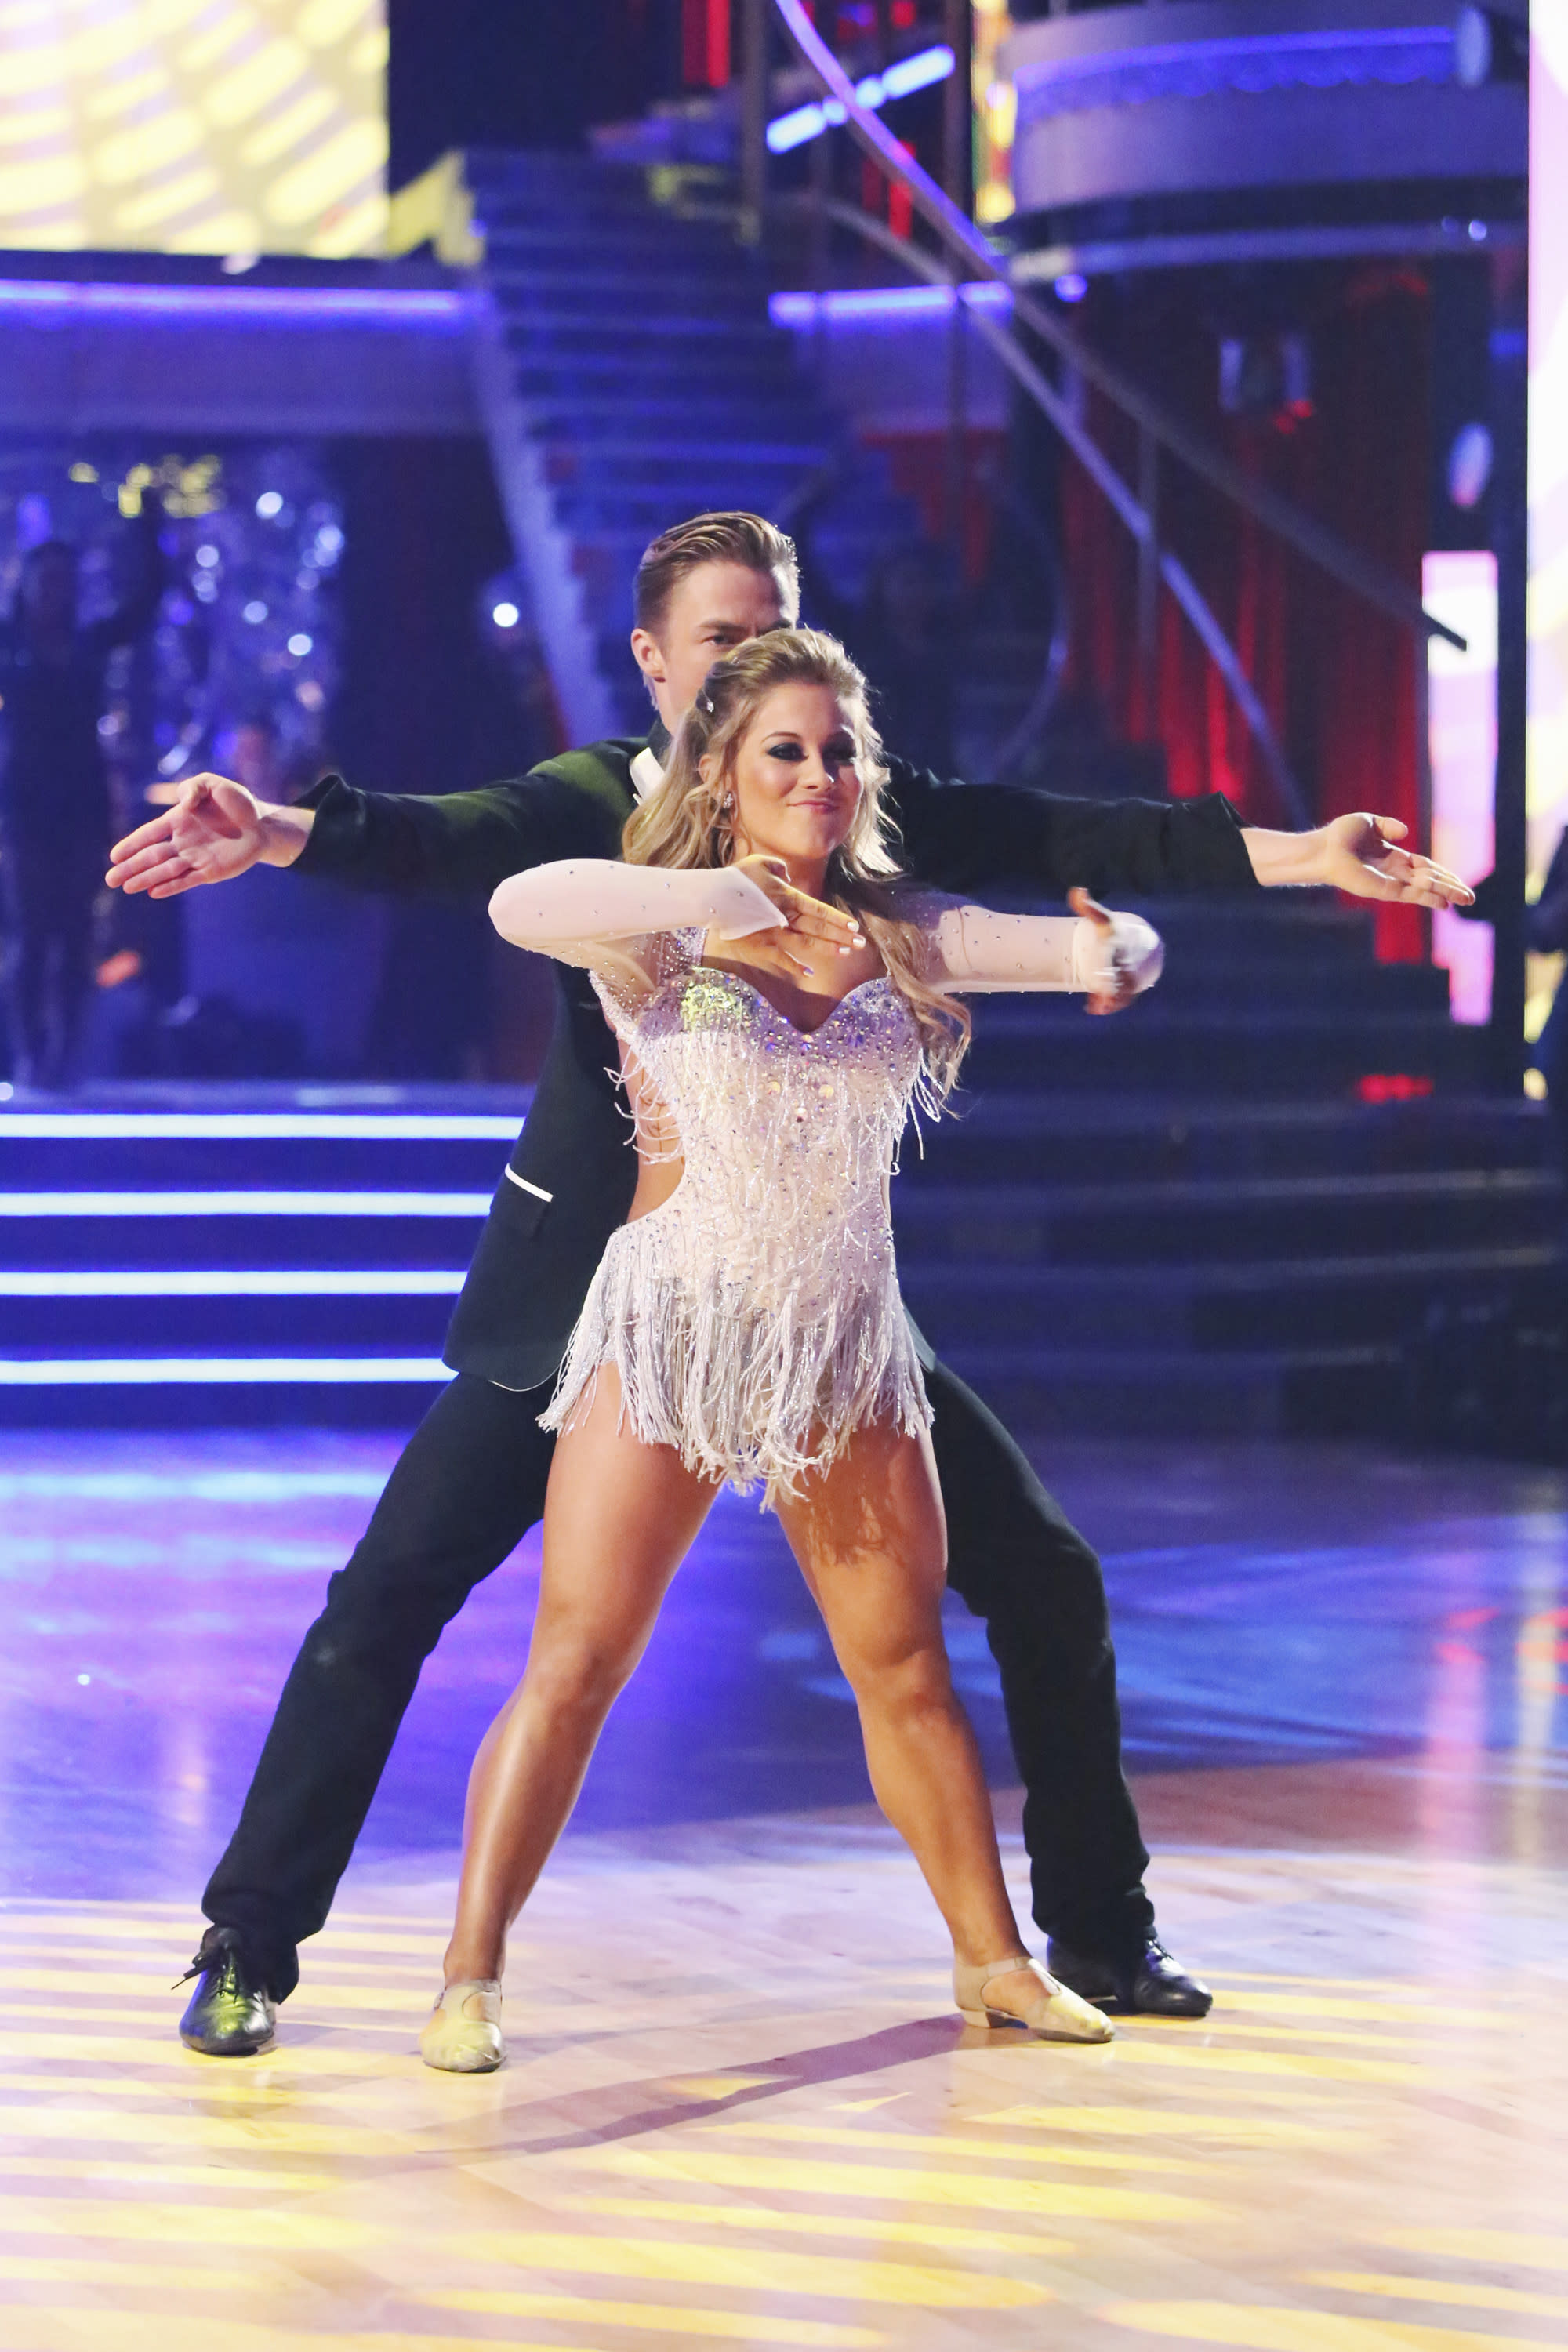 """This Monday, Nov. 26, 2012 publicity photo provided by ABC, shows Derek Hough and Shawn Johnson in """"Dancing with the Stars: All-Stars"""" - Episode 1510, as a competing couple in a Super-Sized Freestyle one-hour performance in which they were allowed to add extra performers, to incorporate all kinds of lifts and tricks to create an out-of-this-world entertaining routine on the ABC Television Network. Johnson is a finalist for the """"Dancing with the Stars"""" Mirror Ball Trophy on the ABC TV show Tuesday, Nov. 27, 2012. (AP Photo/ABC, Adam Taylor)"""